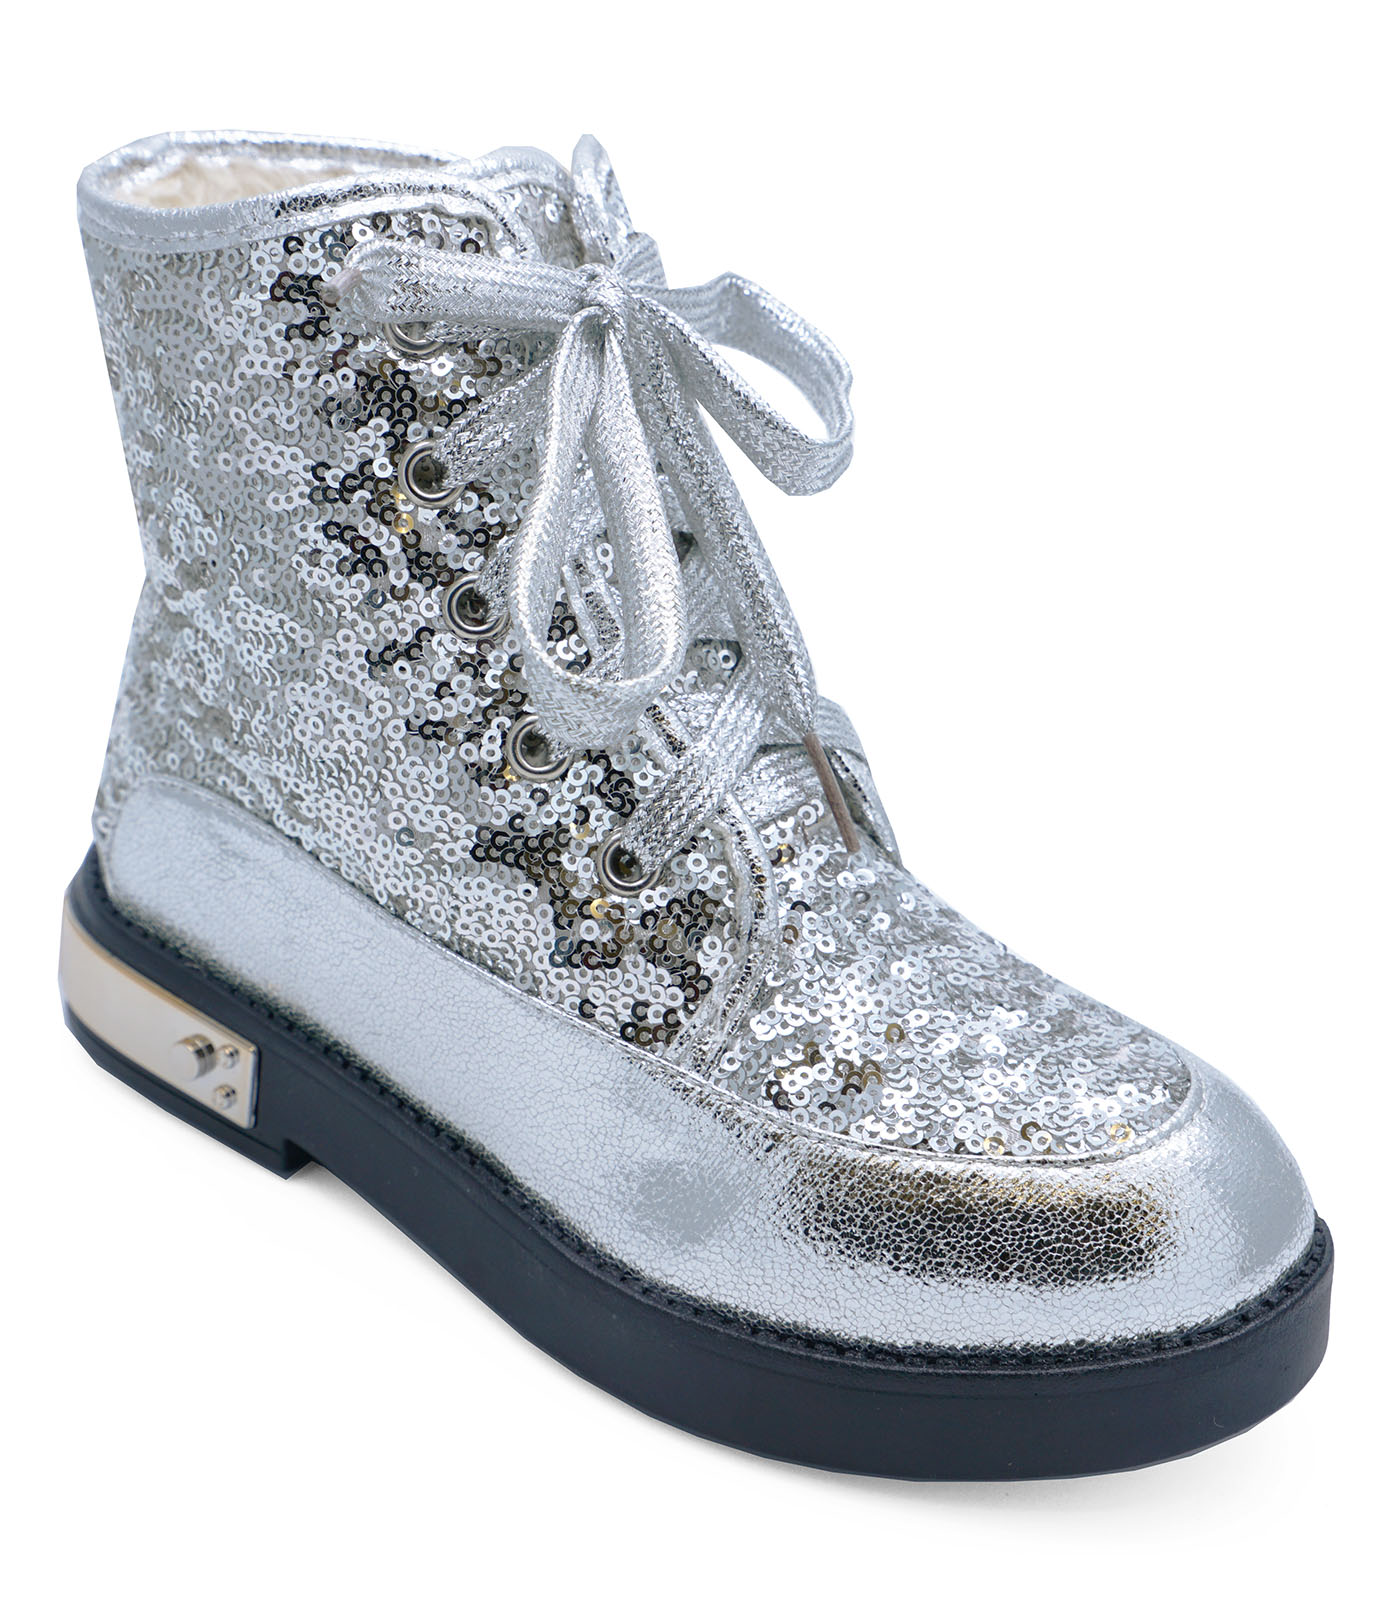 GIRLS KIDS SEQUIN DANCE SILVER LACE-UP ANKLE BOOTS JUNIOR